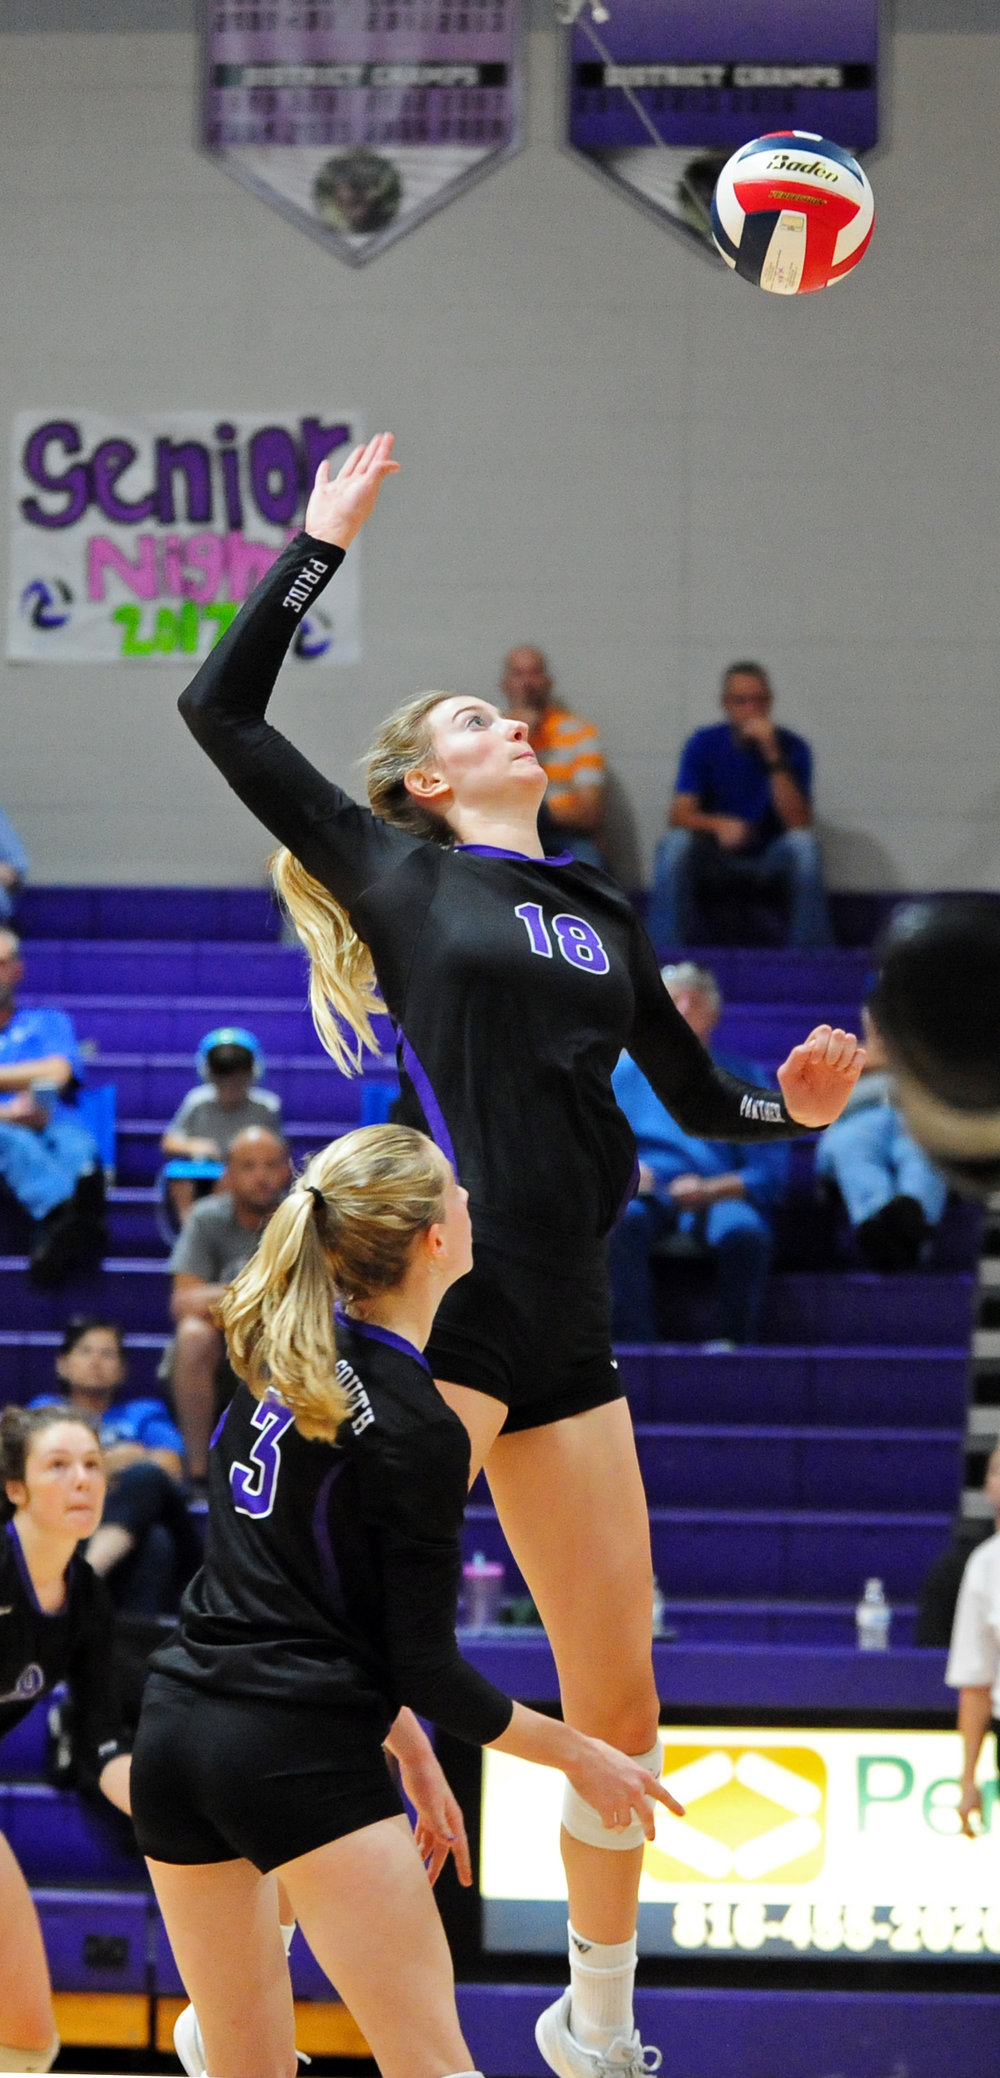 Citizen file photo Park Hill South senior Annika Welty prepares to hit a spike against Liberty during a match this past season.